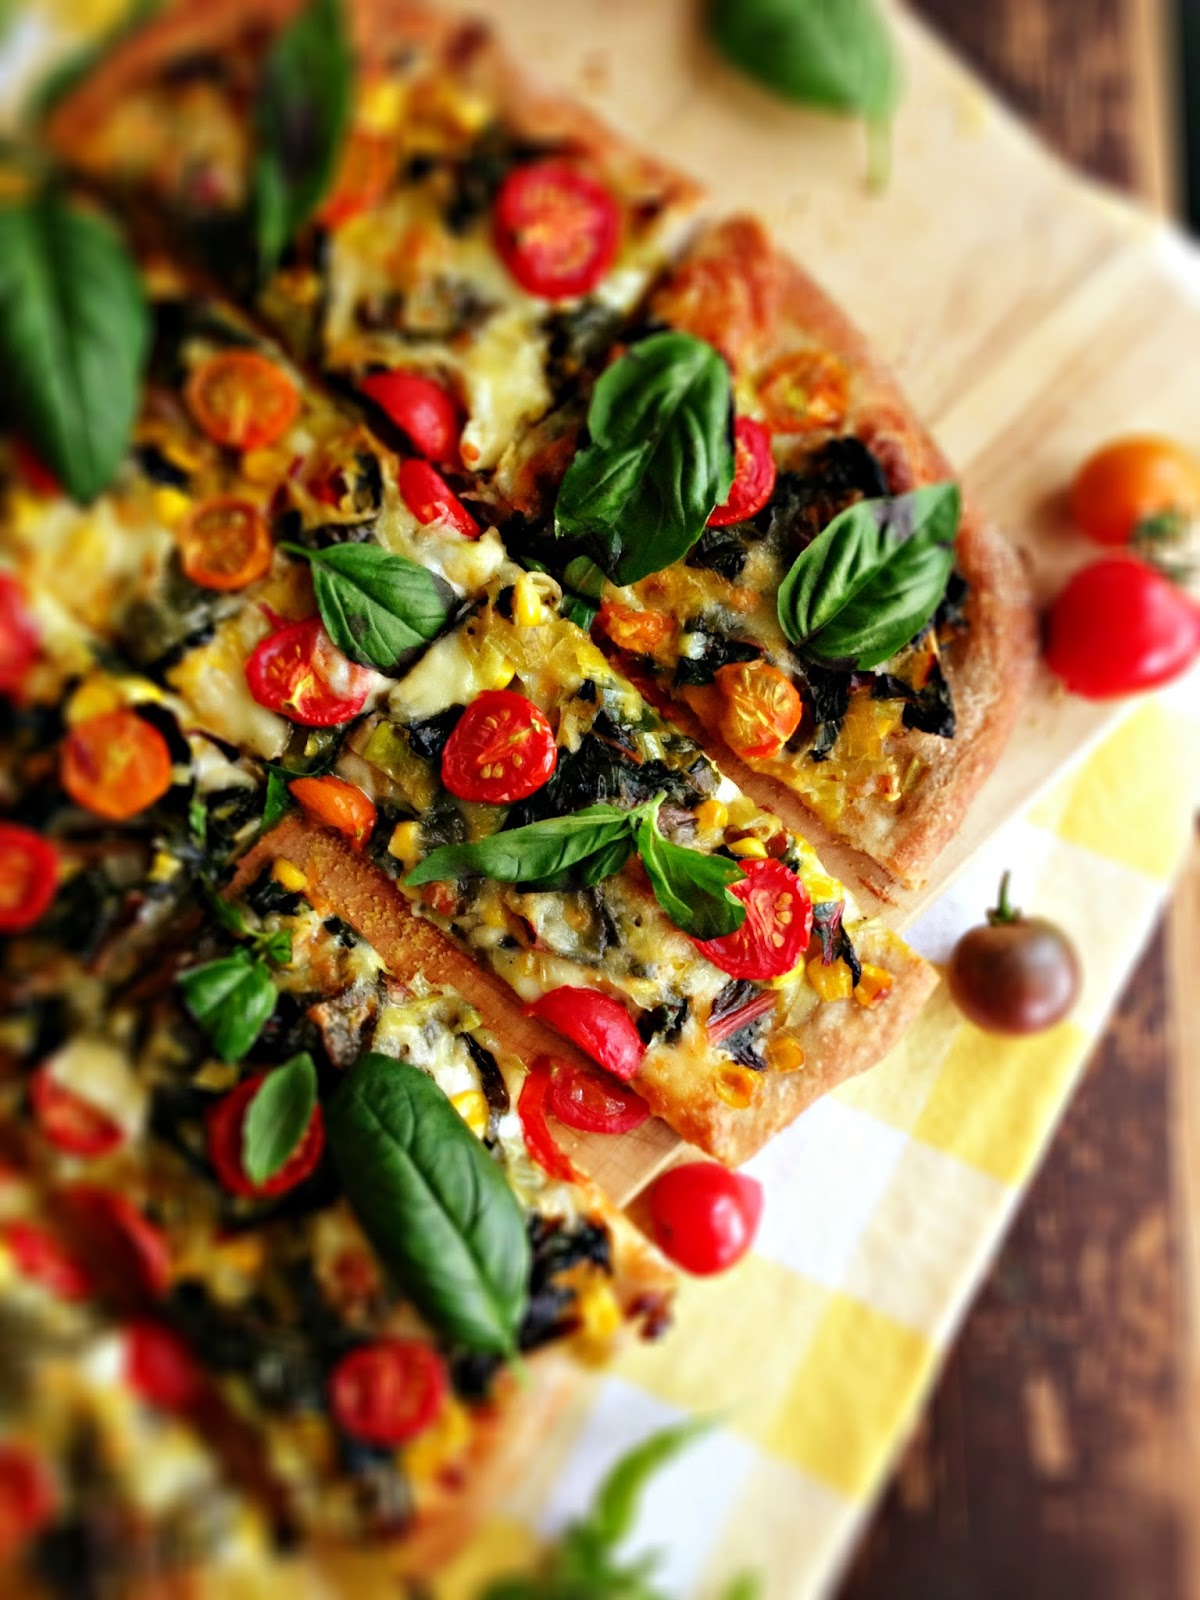 sweetsugarbean: Swiss Chard & Corn Pizza with Cherry Tomatoes and ...